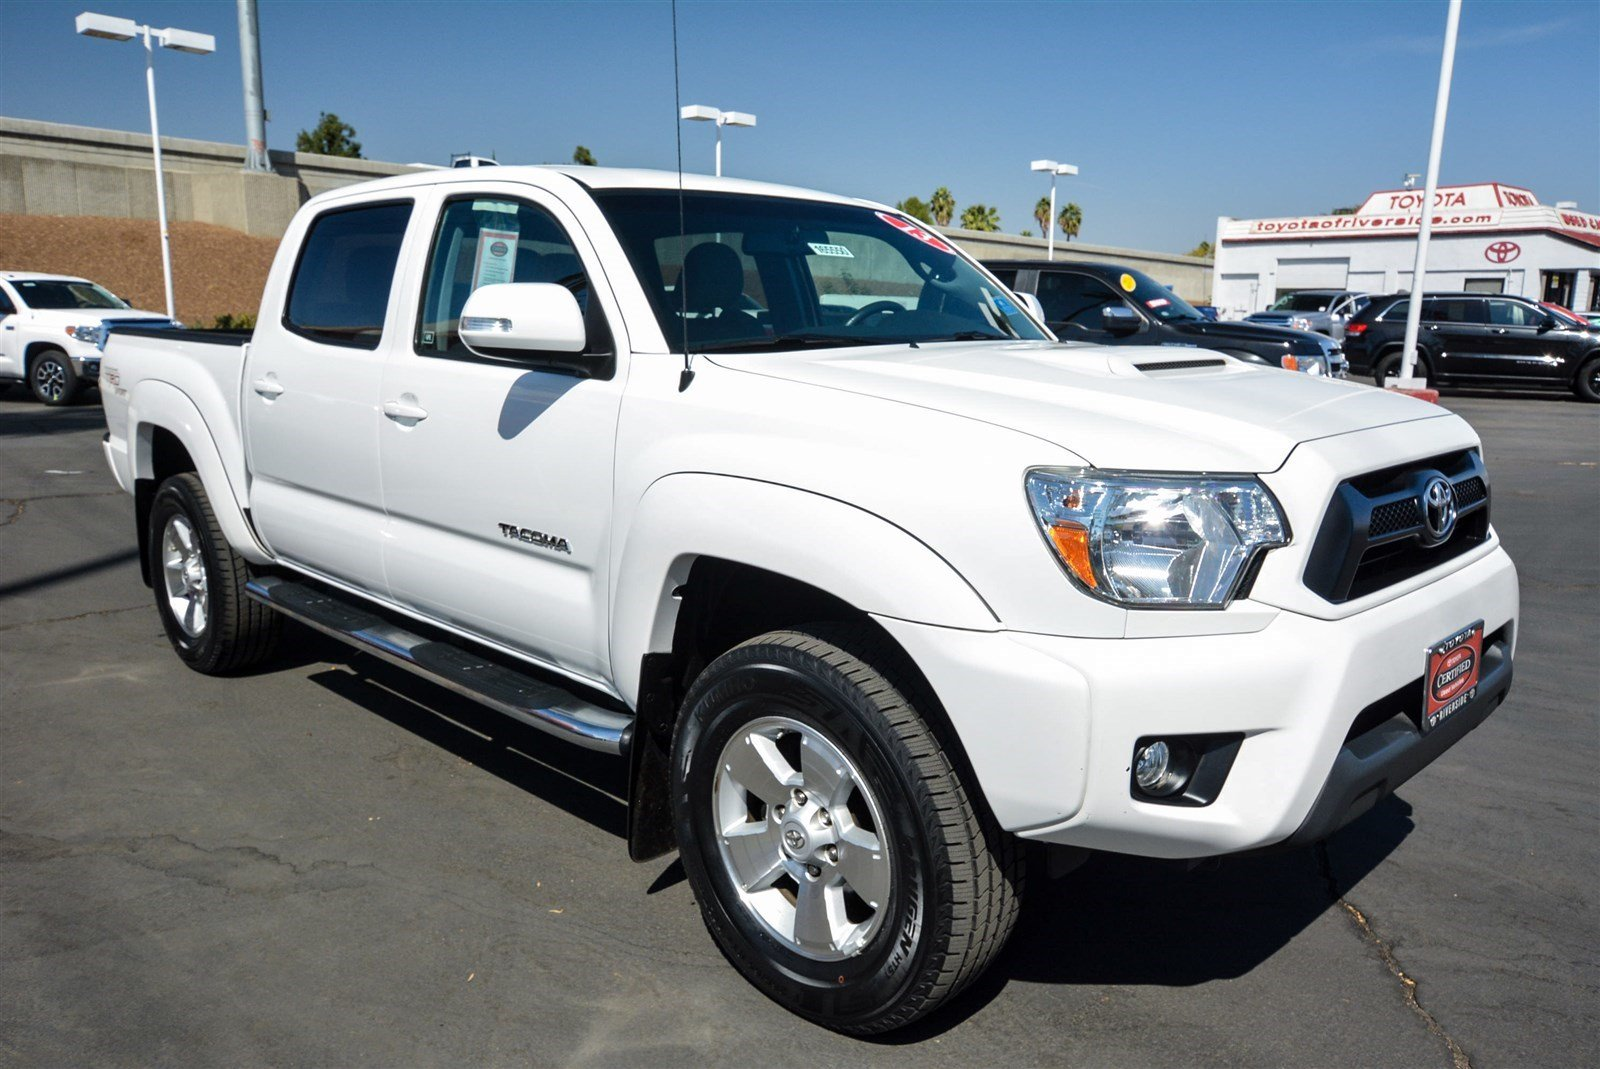 certified pre owned 2013 toyota tacoma prerunner double cab in riverside 00165550 toyota of. Black Bedroom Furniture Sets. Home Design Ideas